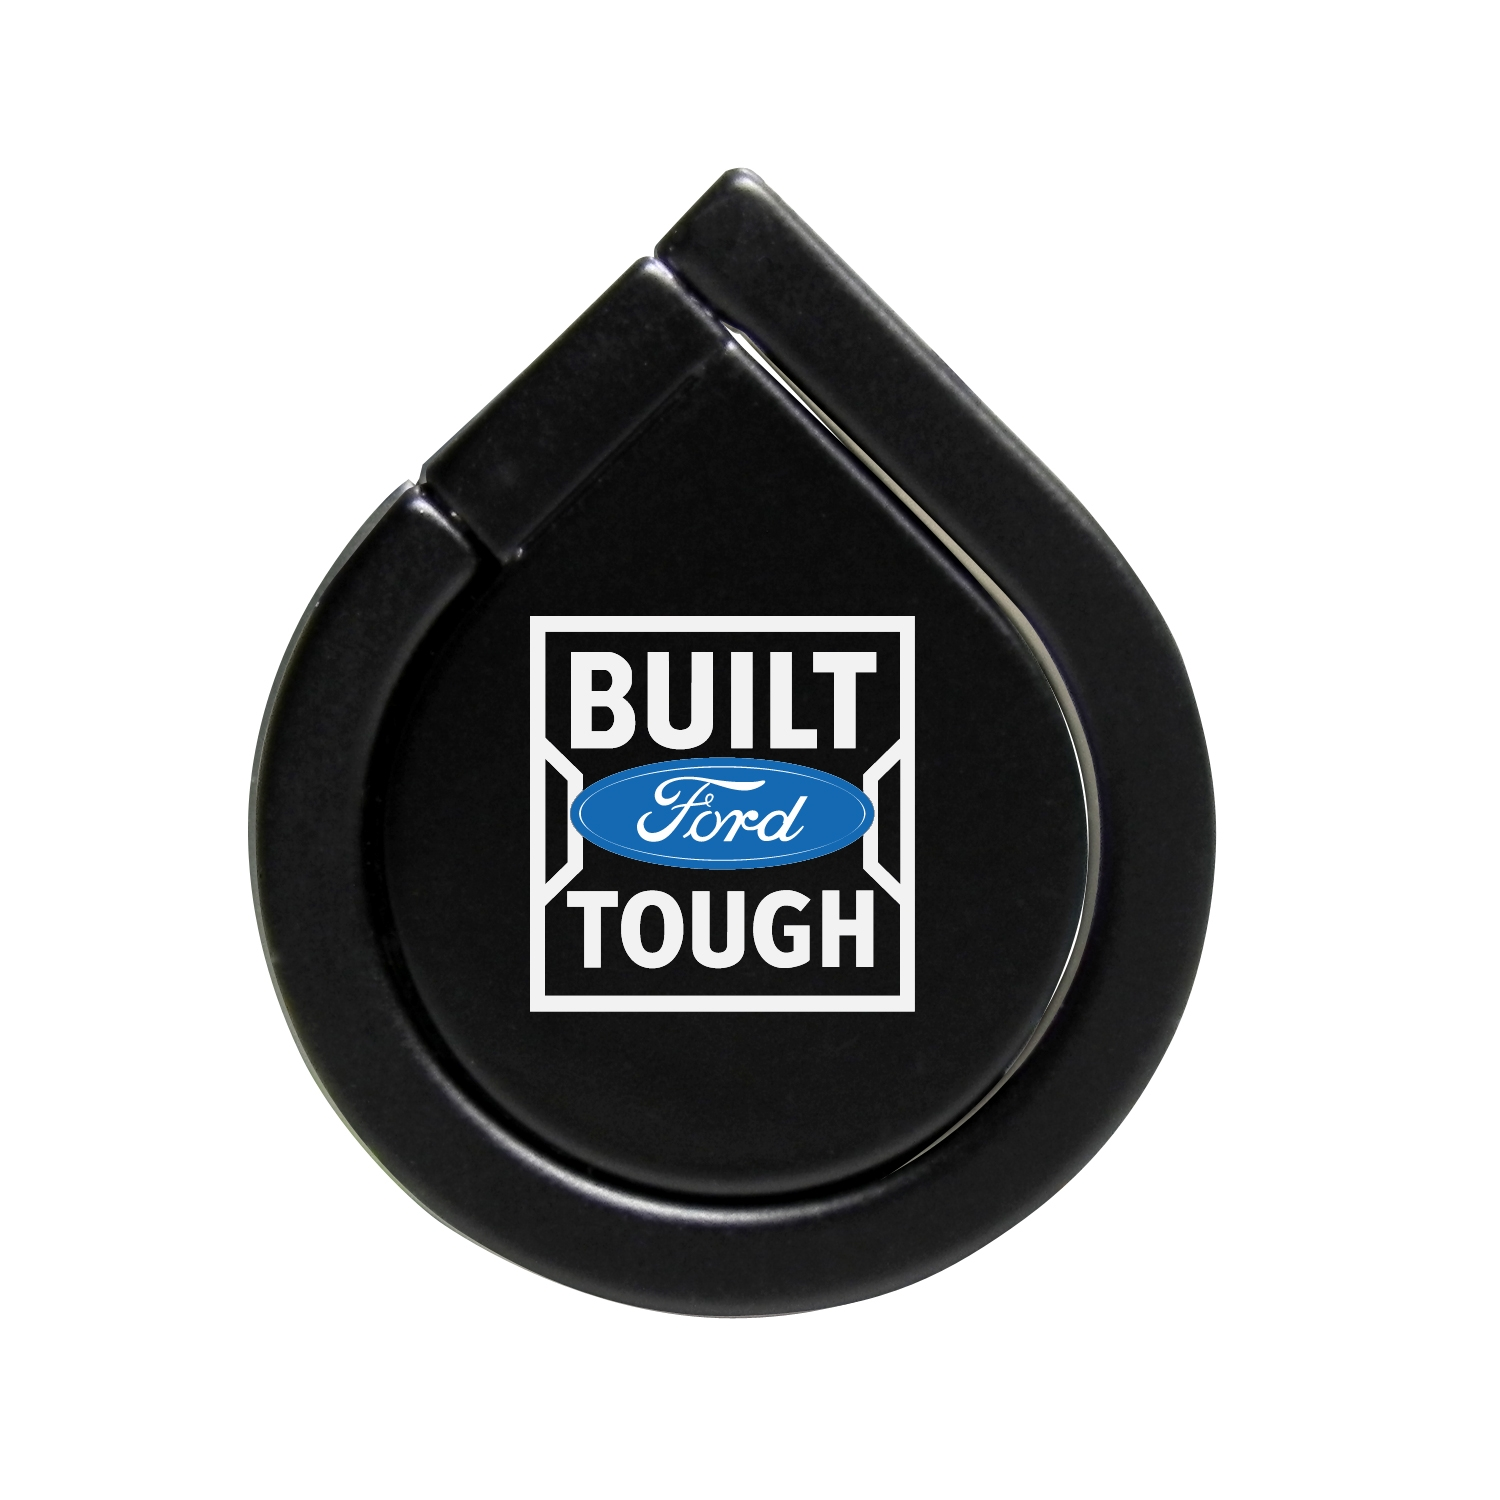 Ford Built Ford Tough Black 360 Degree Rotation Finger Ring Holder for Cell Phone